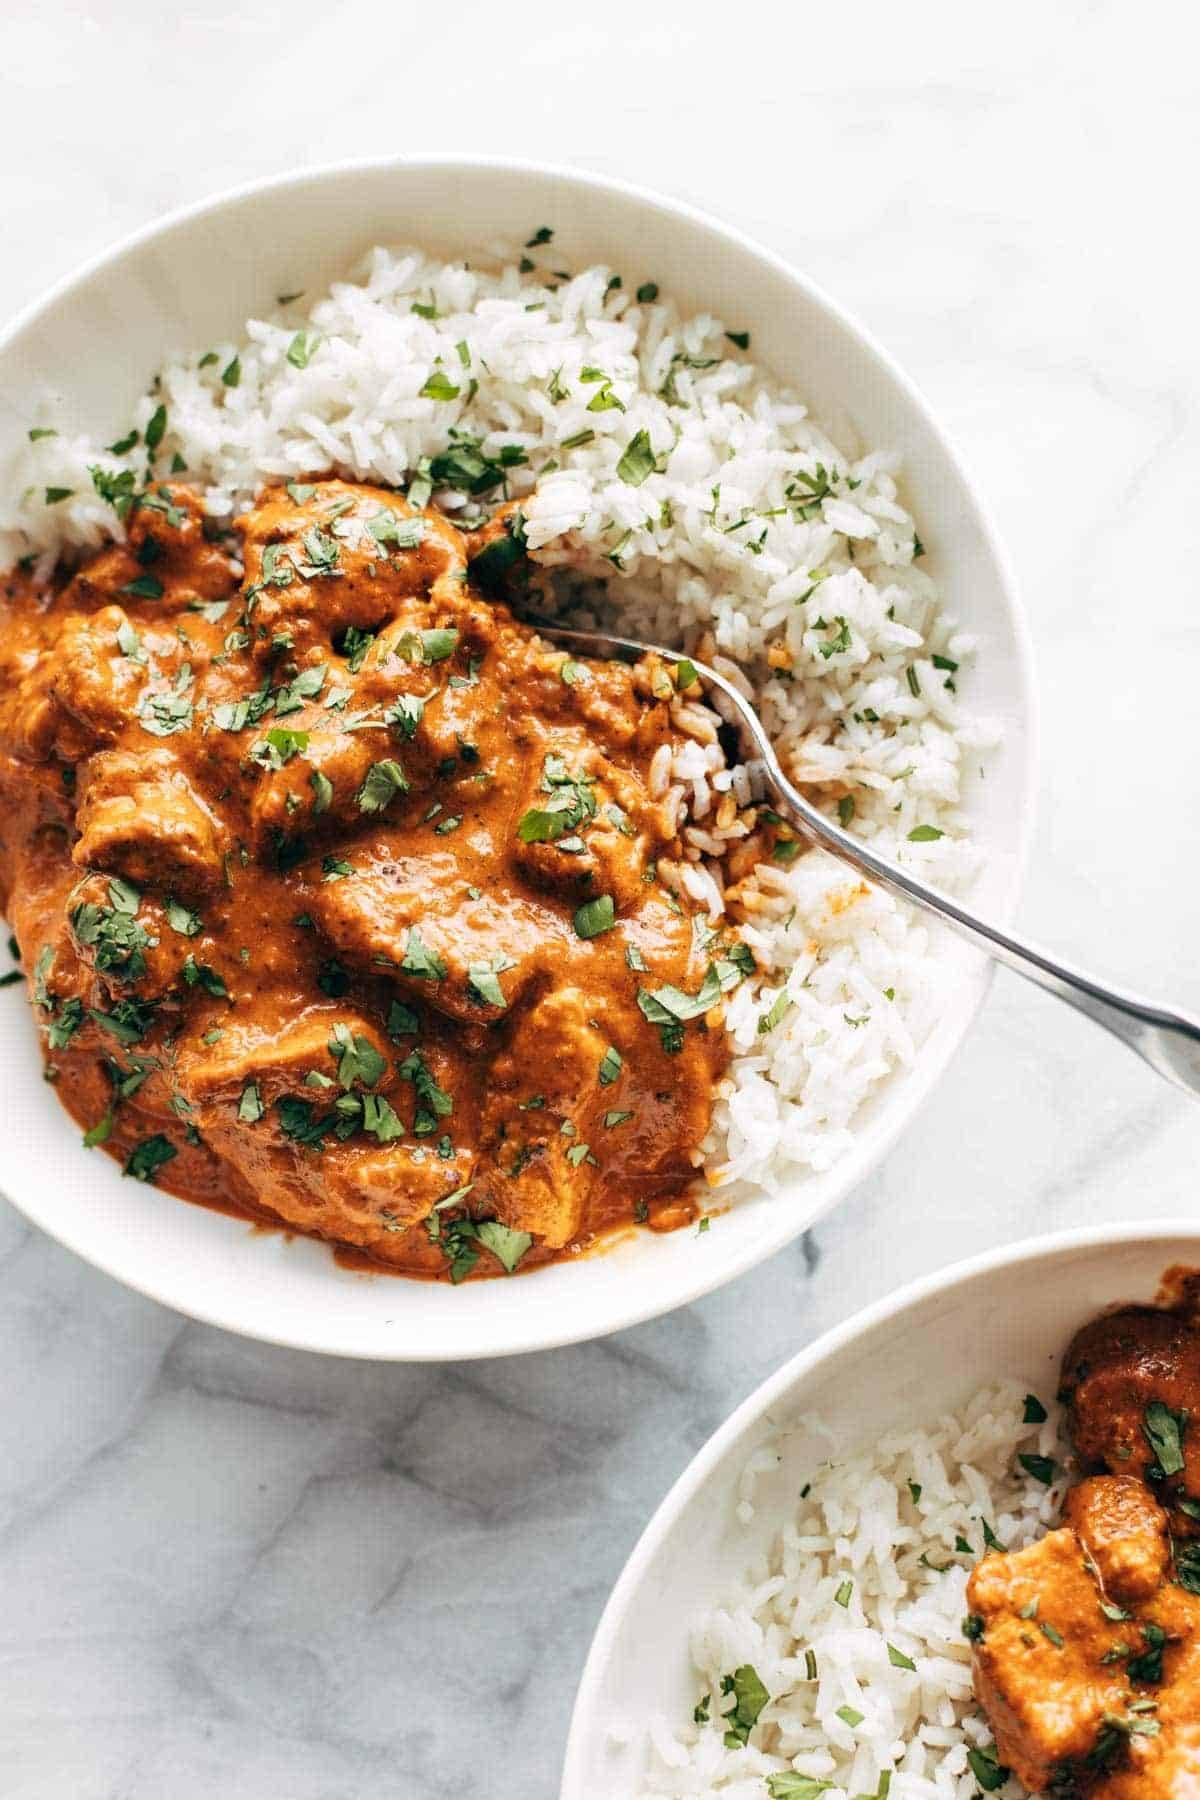 Chicken tikka masala in a bowl with rice.